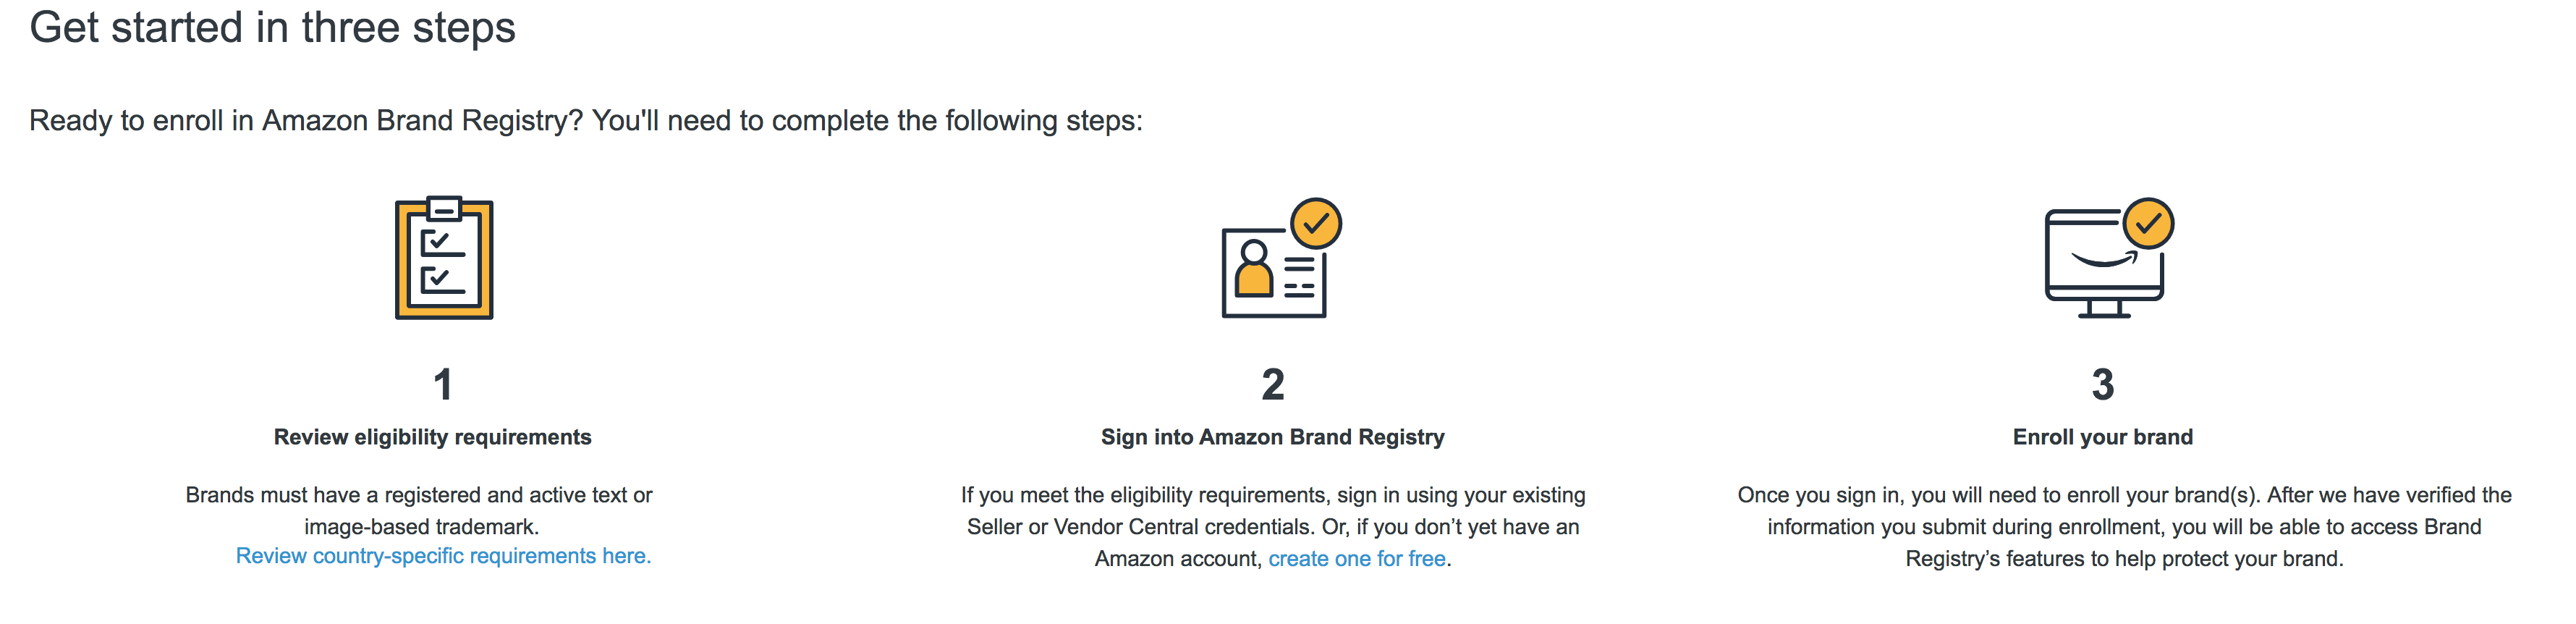 Amazon Brand Registry Steps